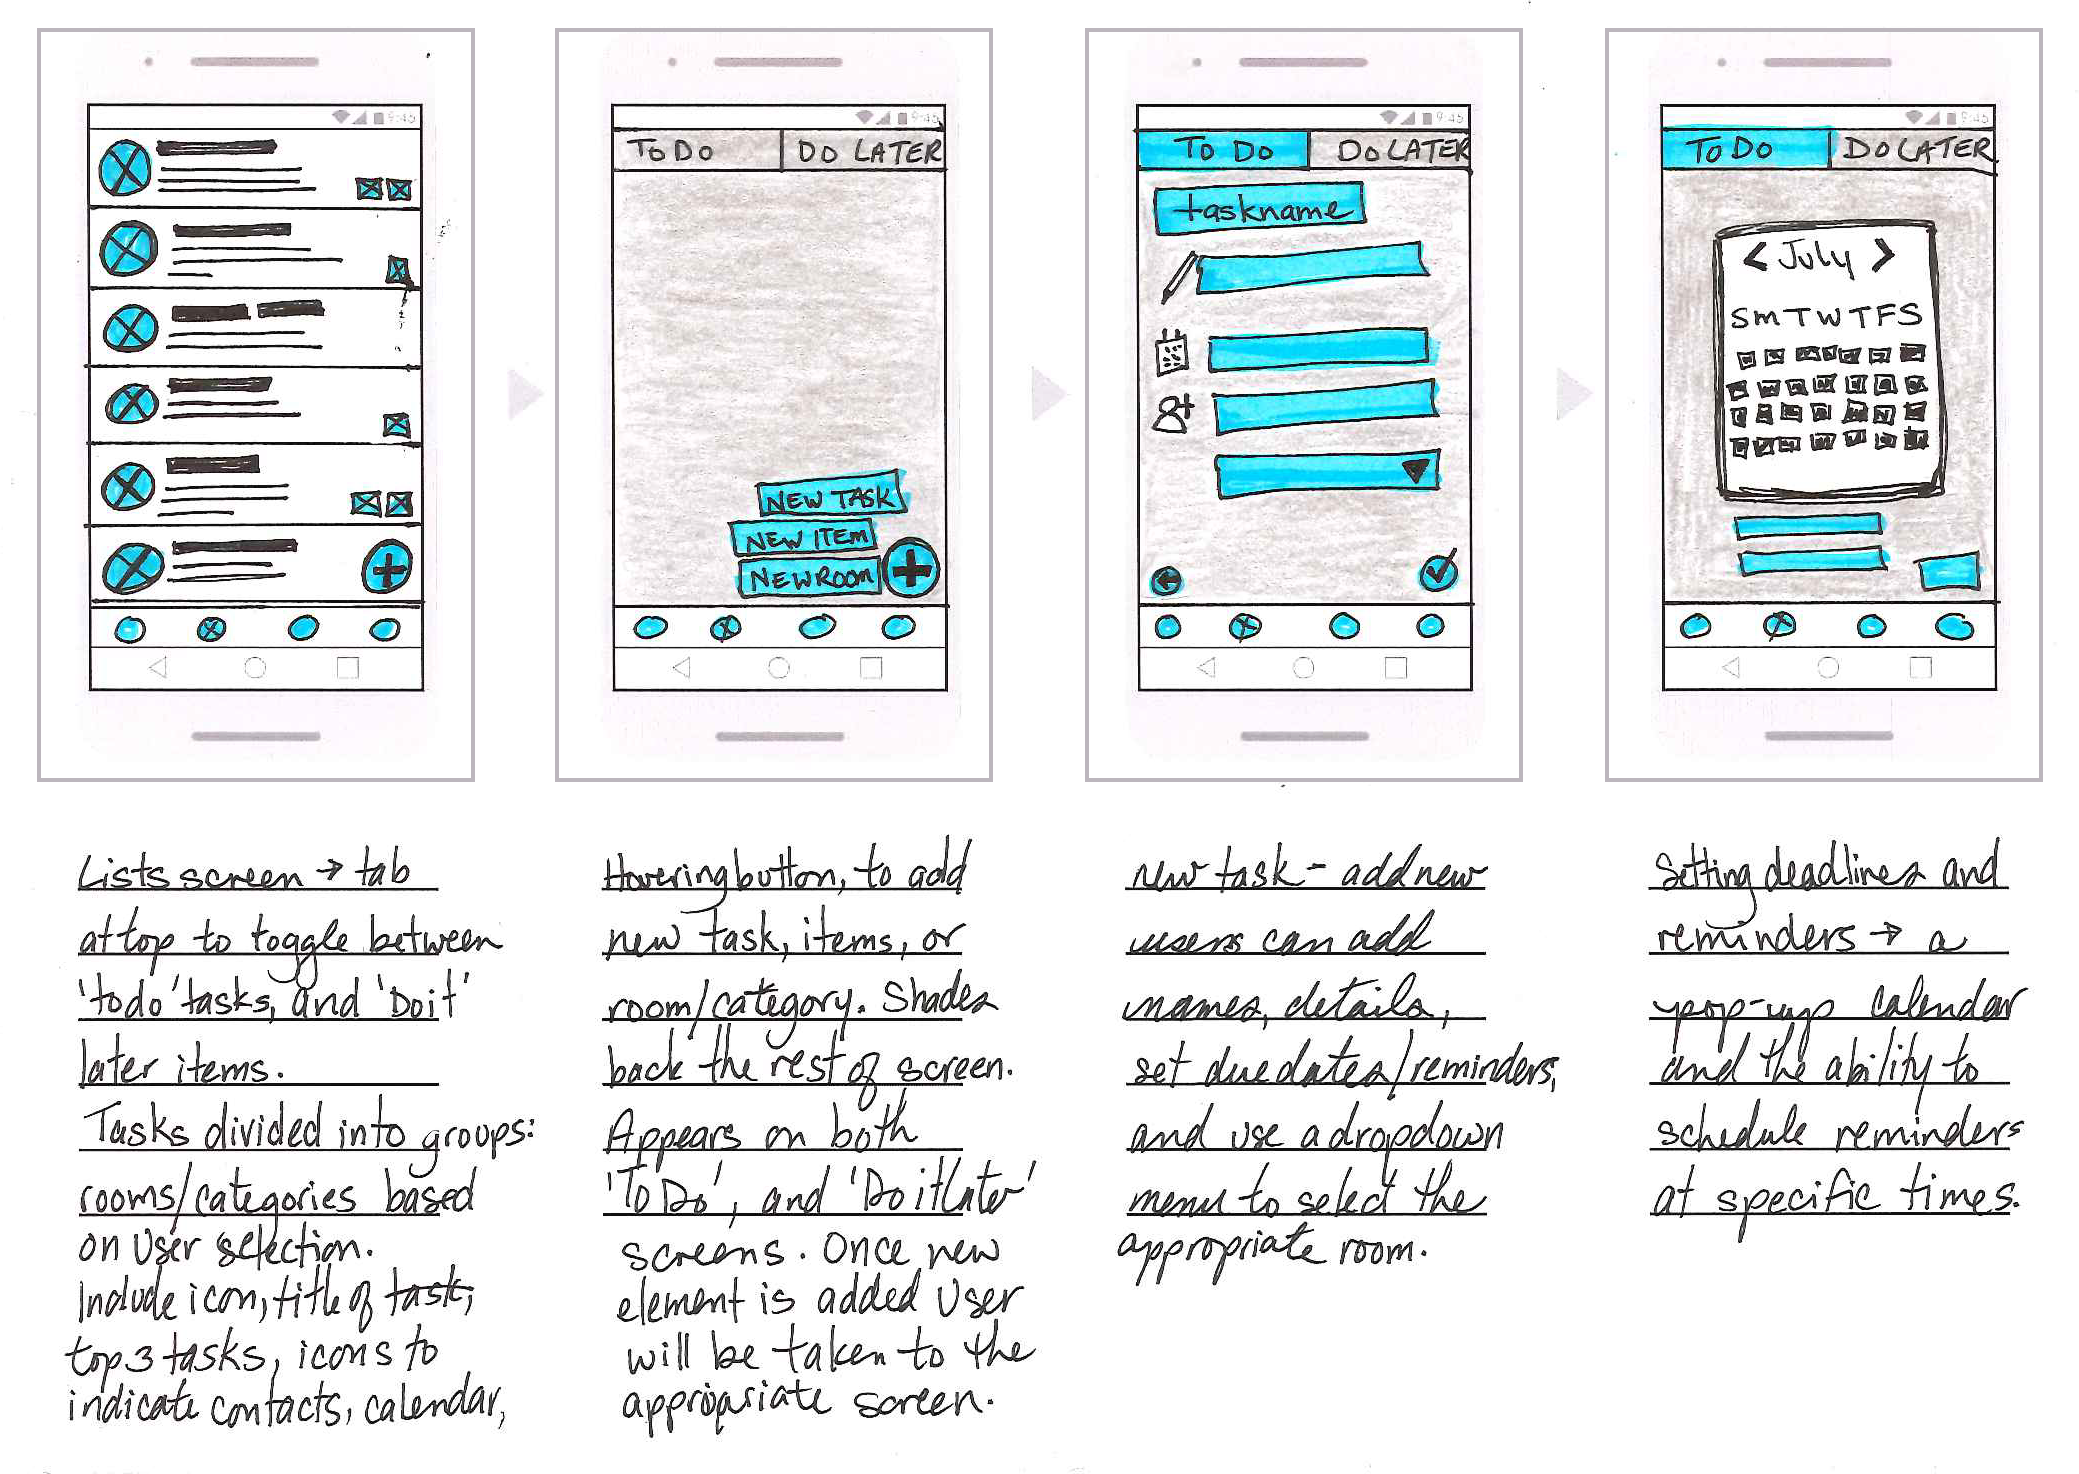 wireframes_Page_4.png